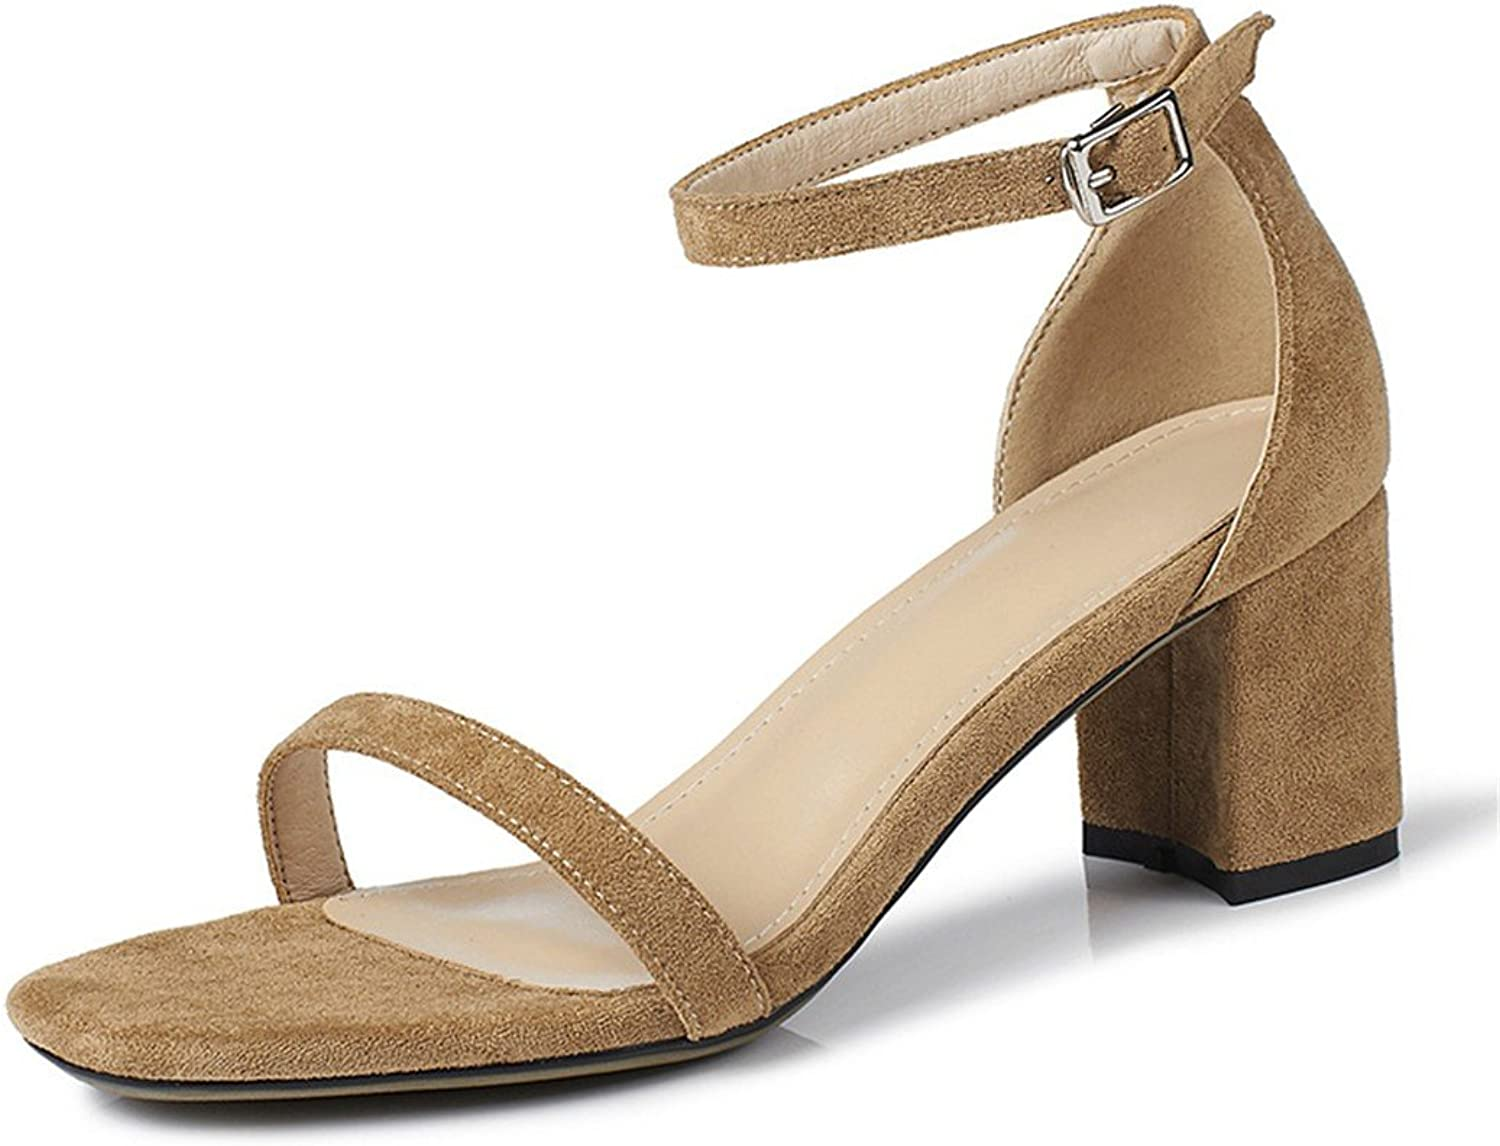 Sandals with Party and Ladies in Summer